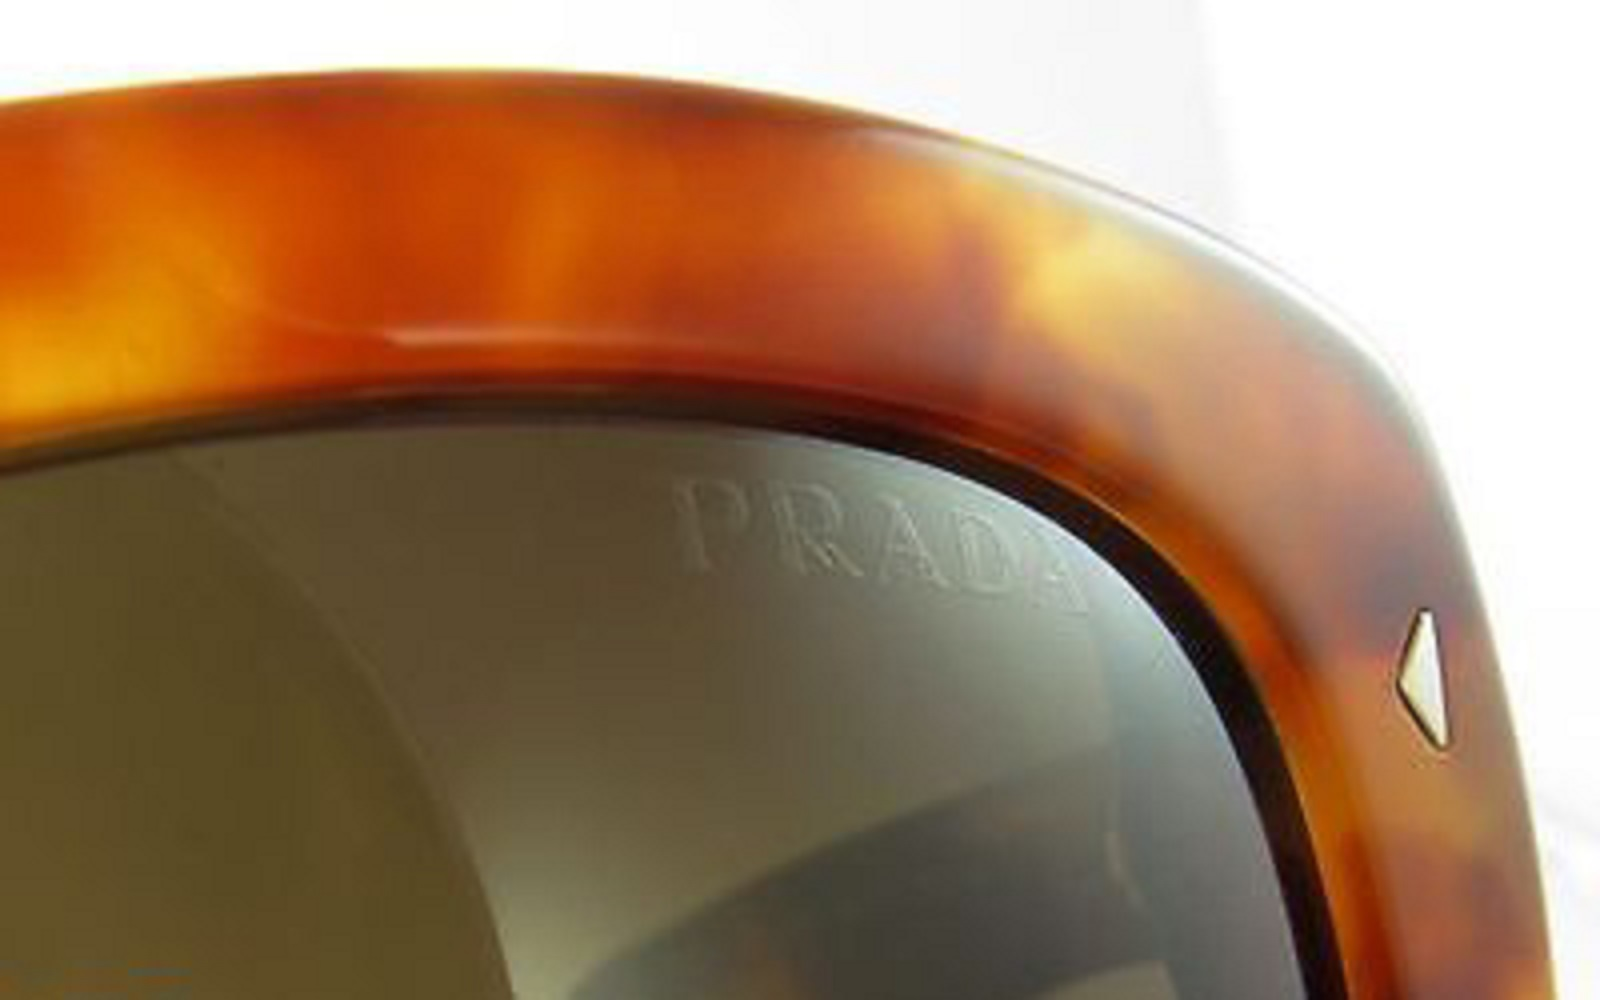 Spot fake Prada sunglasses - check the lenses